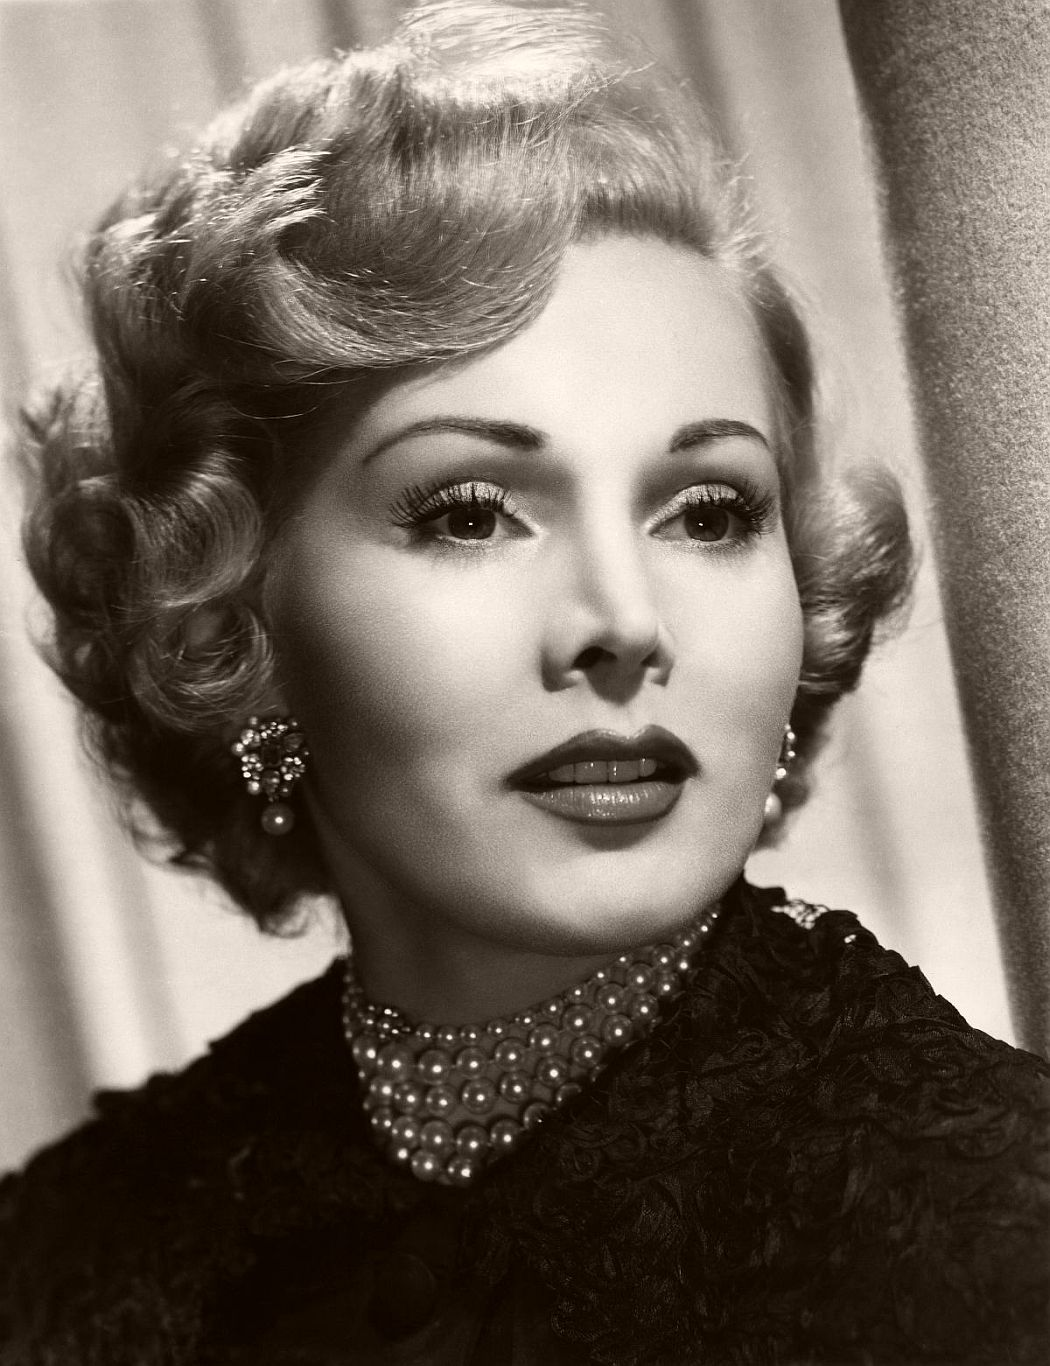 Vintage: Portraits of Zsa Zsa Gabor